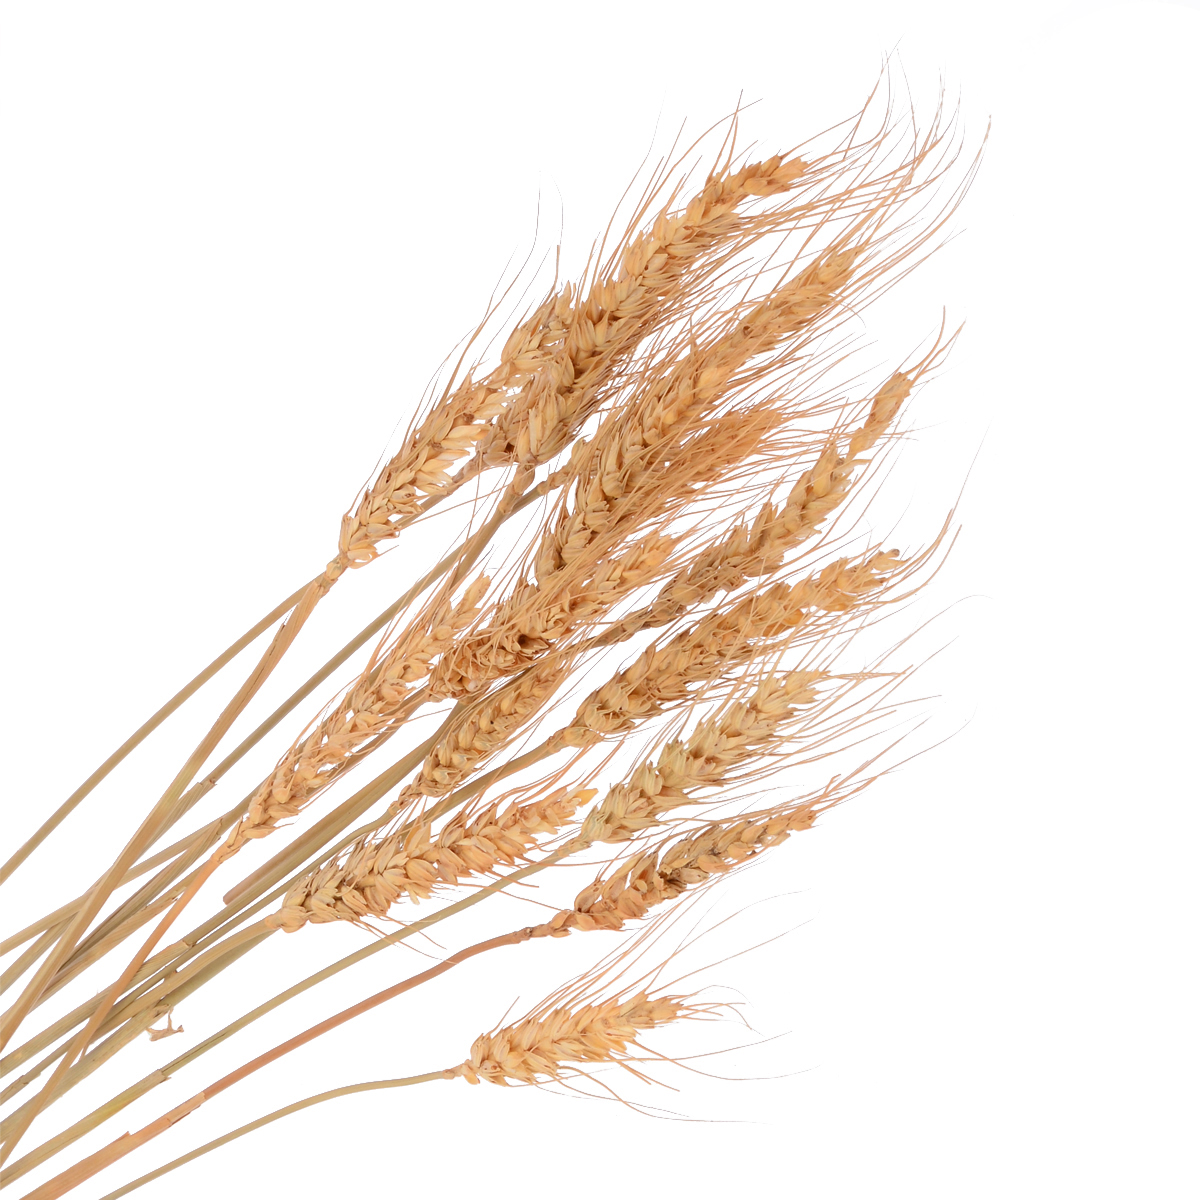 15 branches of Wheatear Natural Raw Color Dried Wheat Bouquet Photo Prop Wedding Decoration Supplies